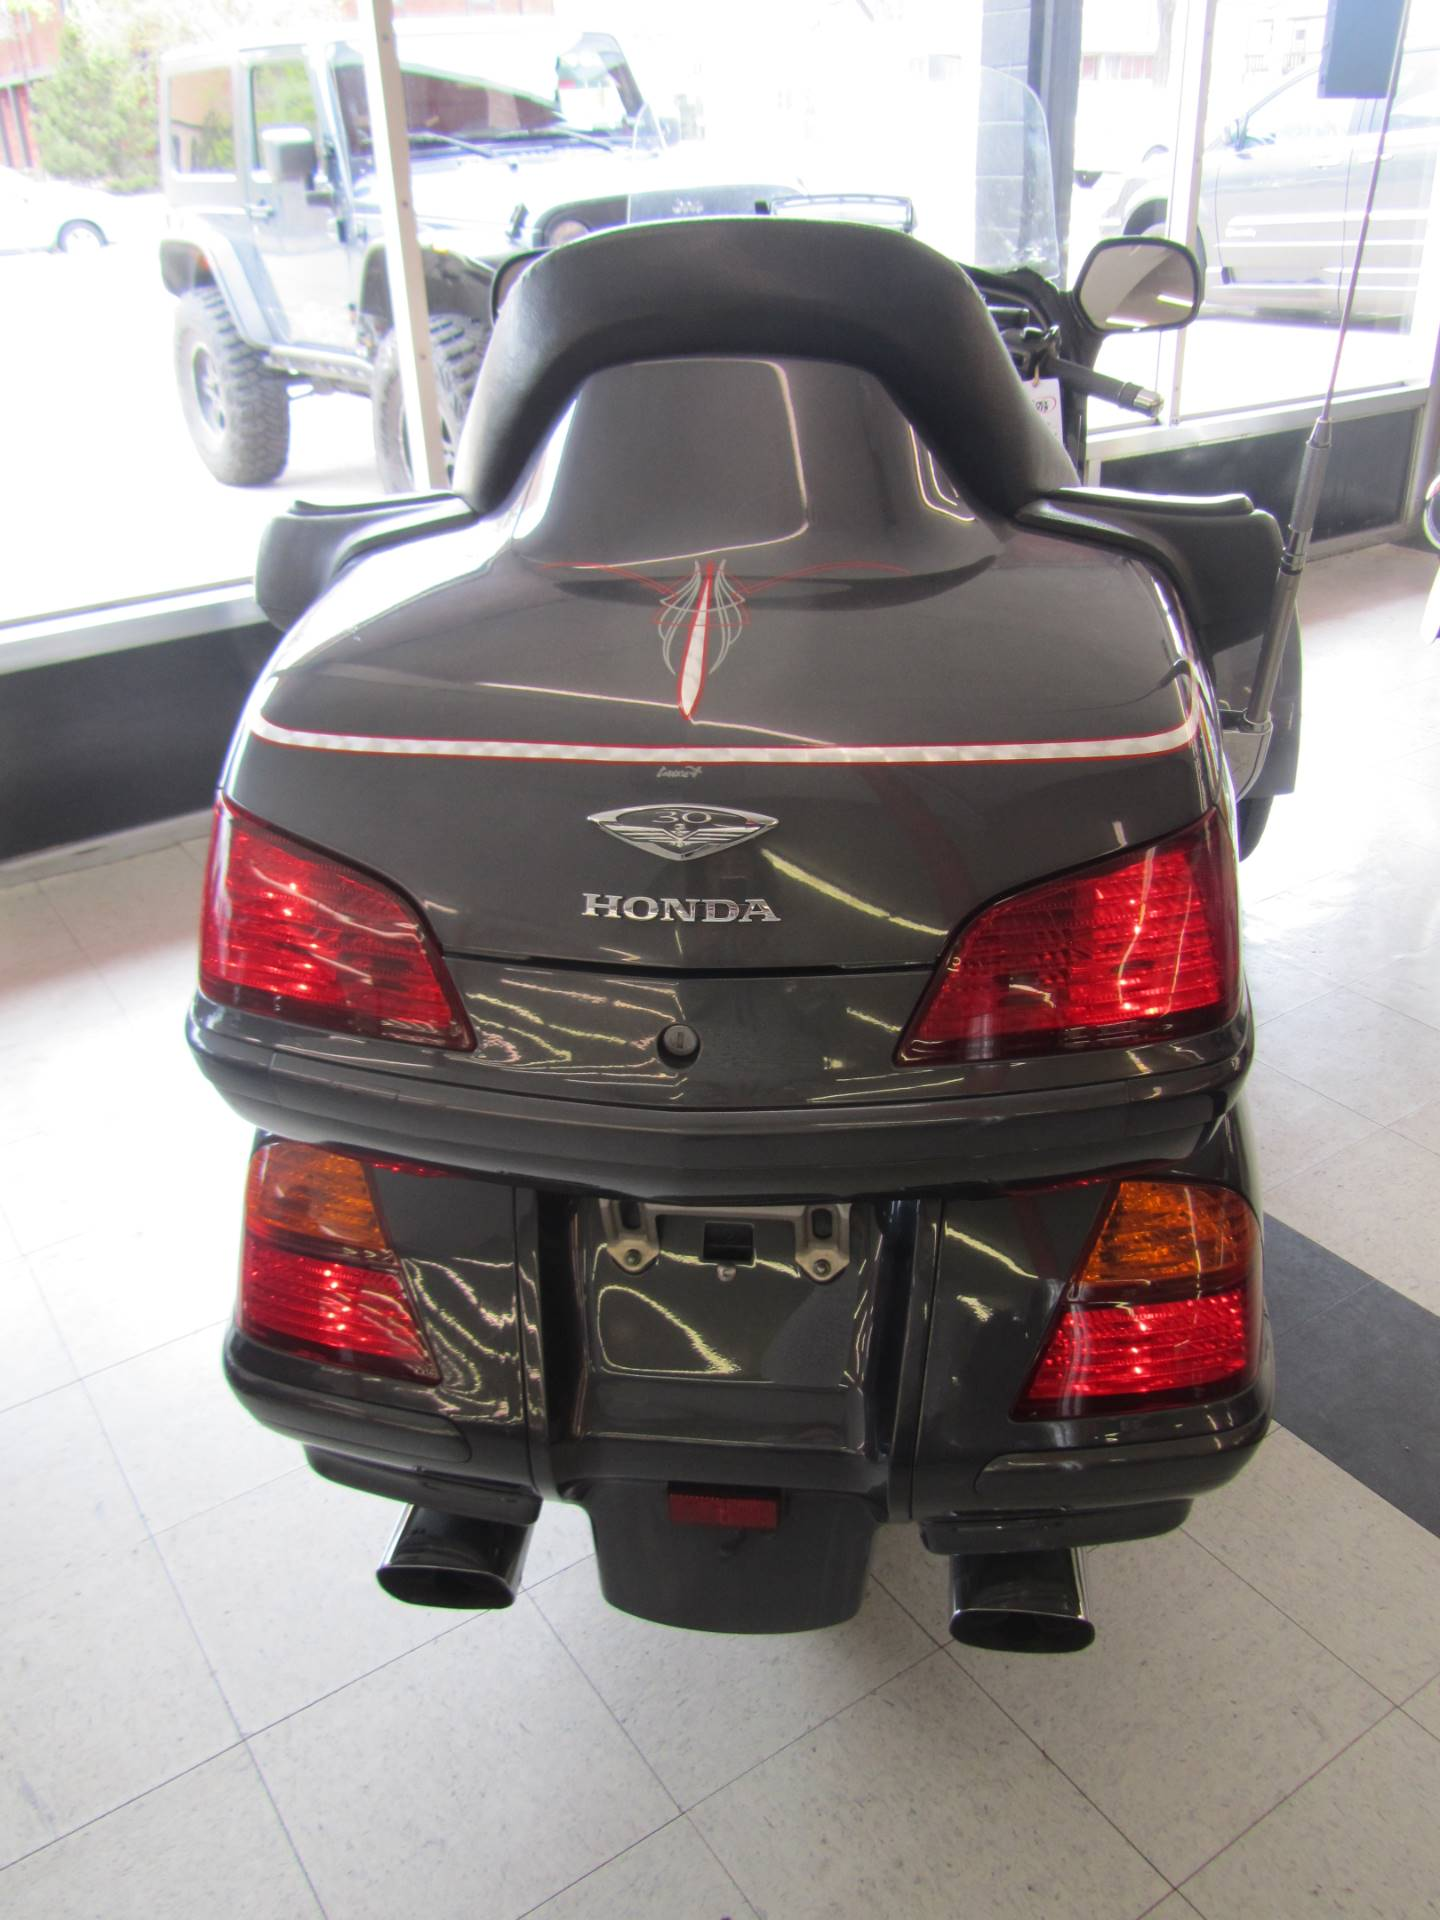 2005 Honda Gold Wing® in Colorado Springs, Colorado